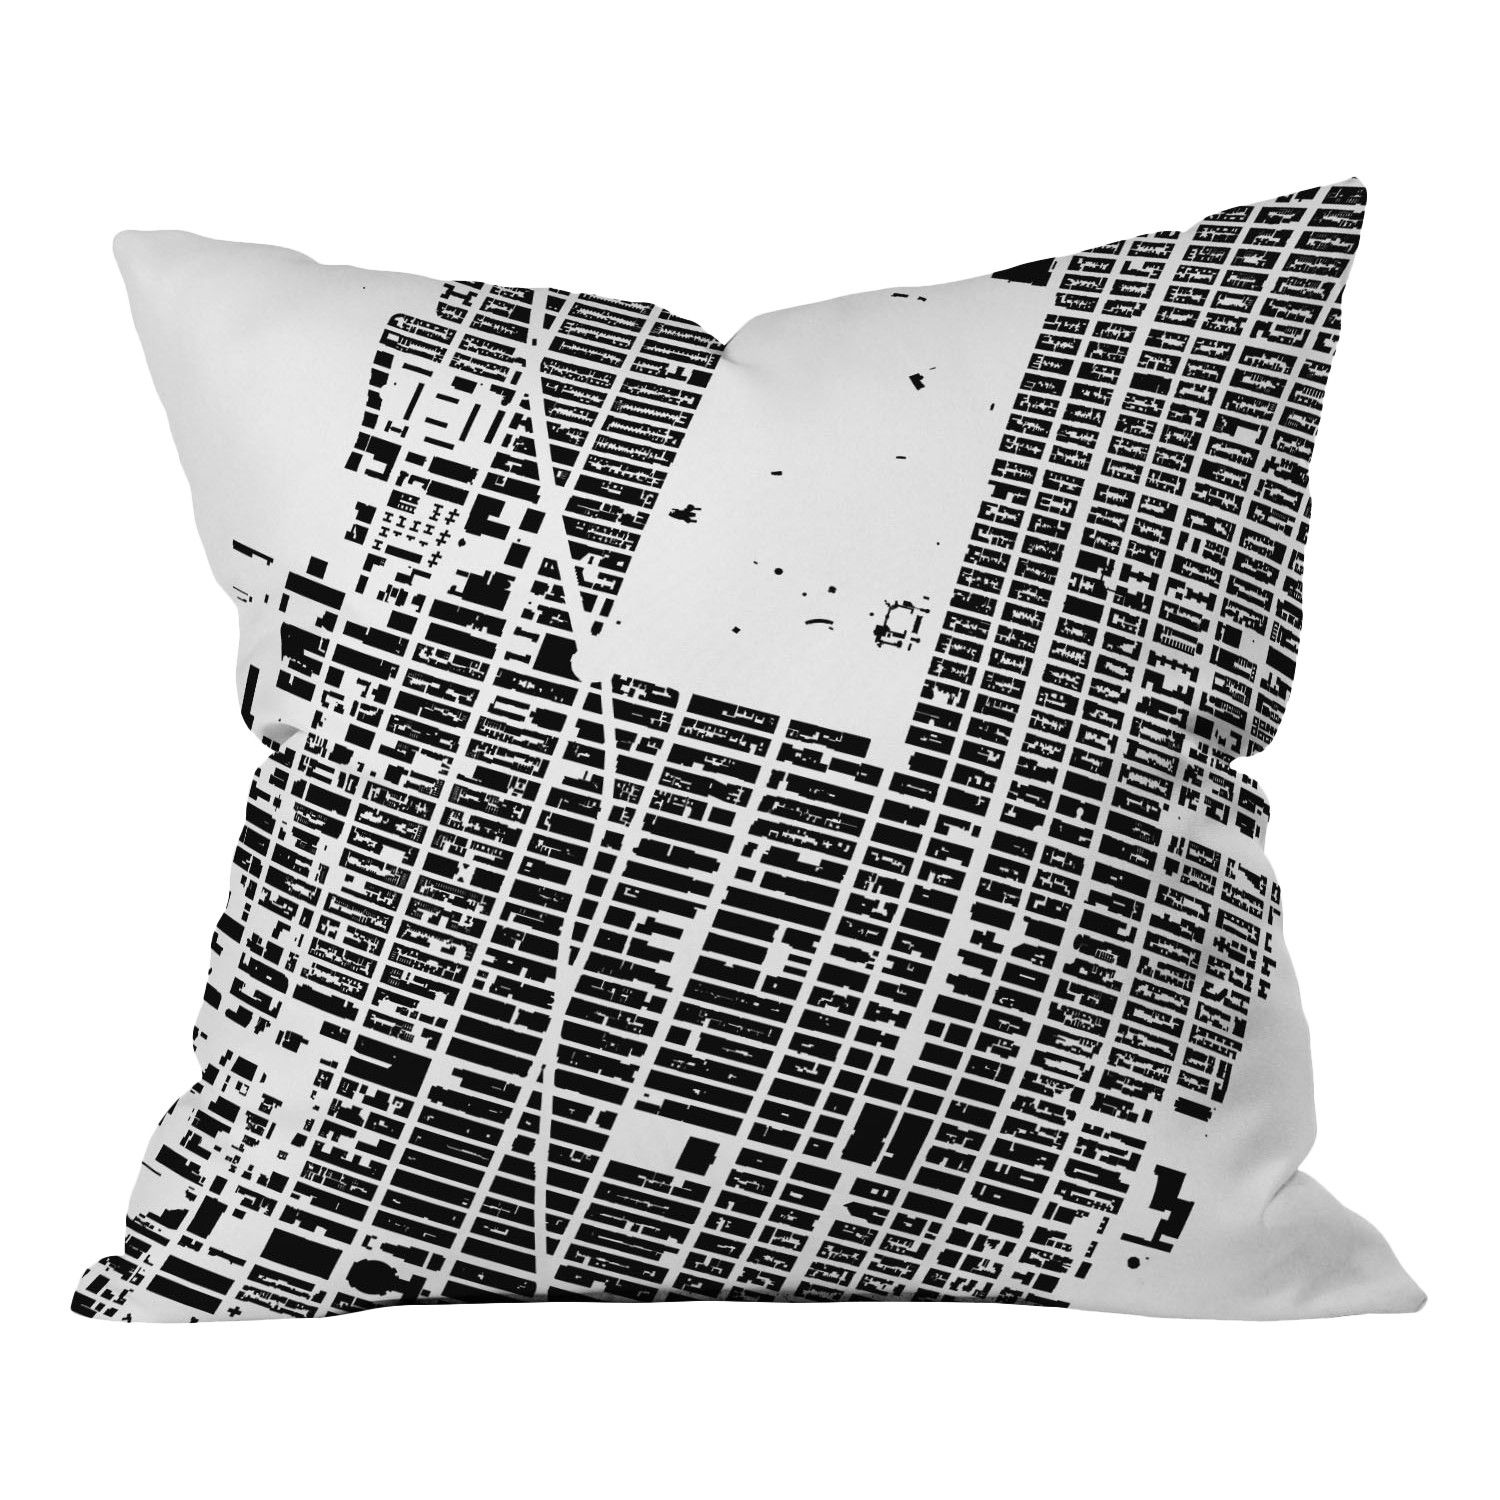 DENY Designs CityFabric Inc. NYC Midtown Woven Polyester Throw Pillow   AllModern